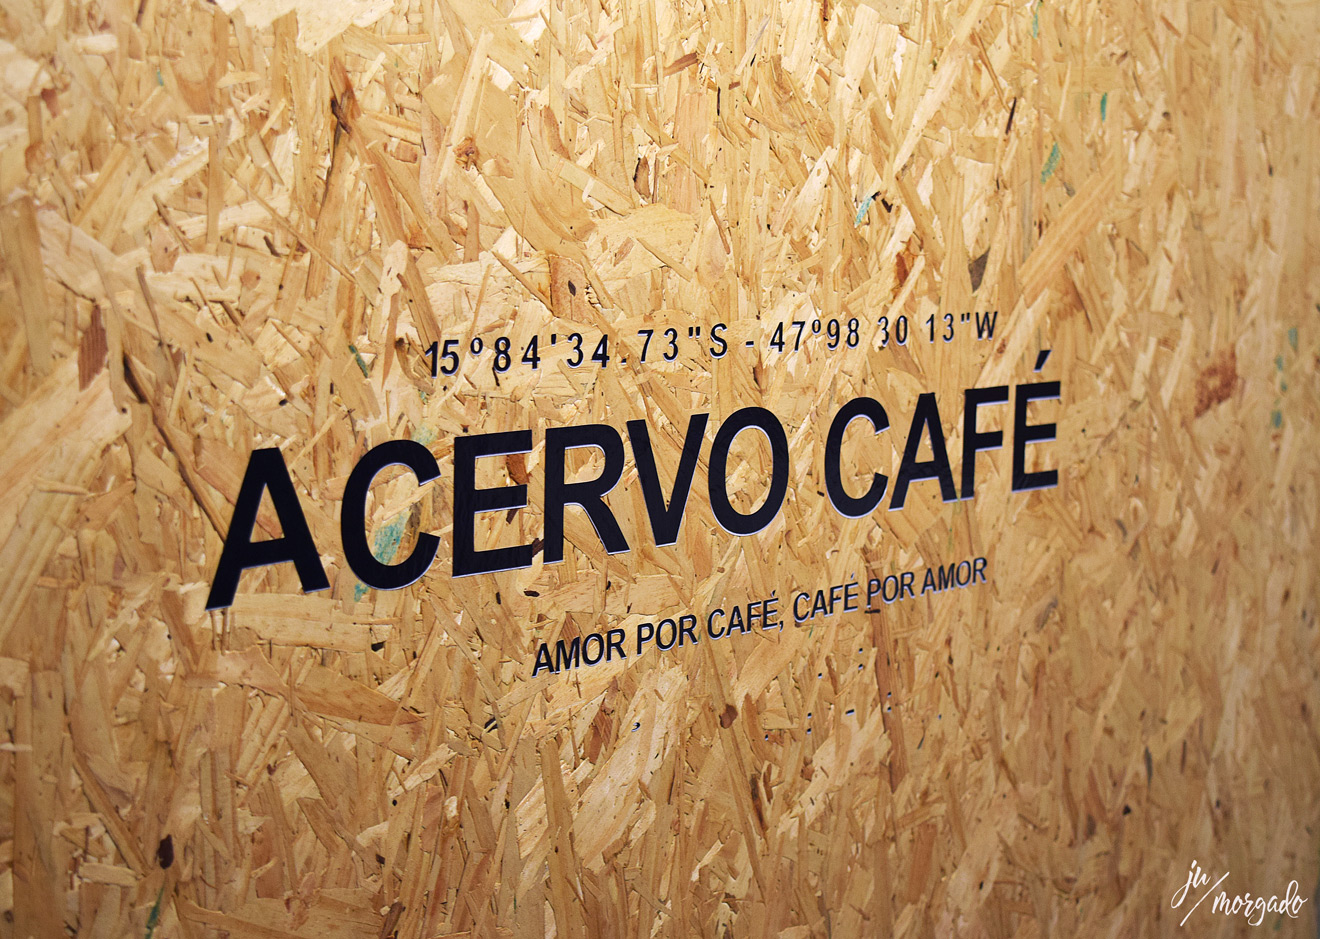 Placa de entrada do Acervo Café